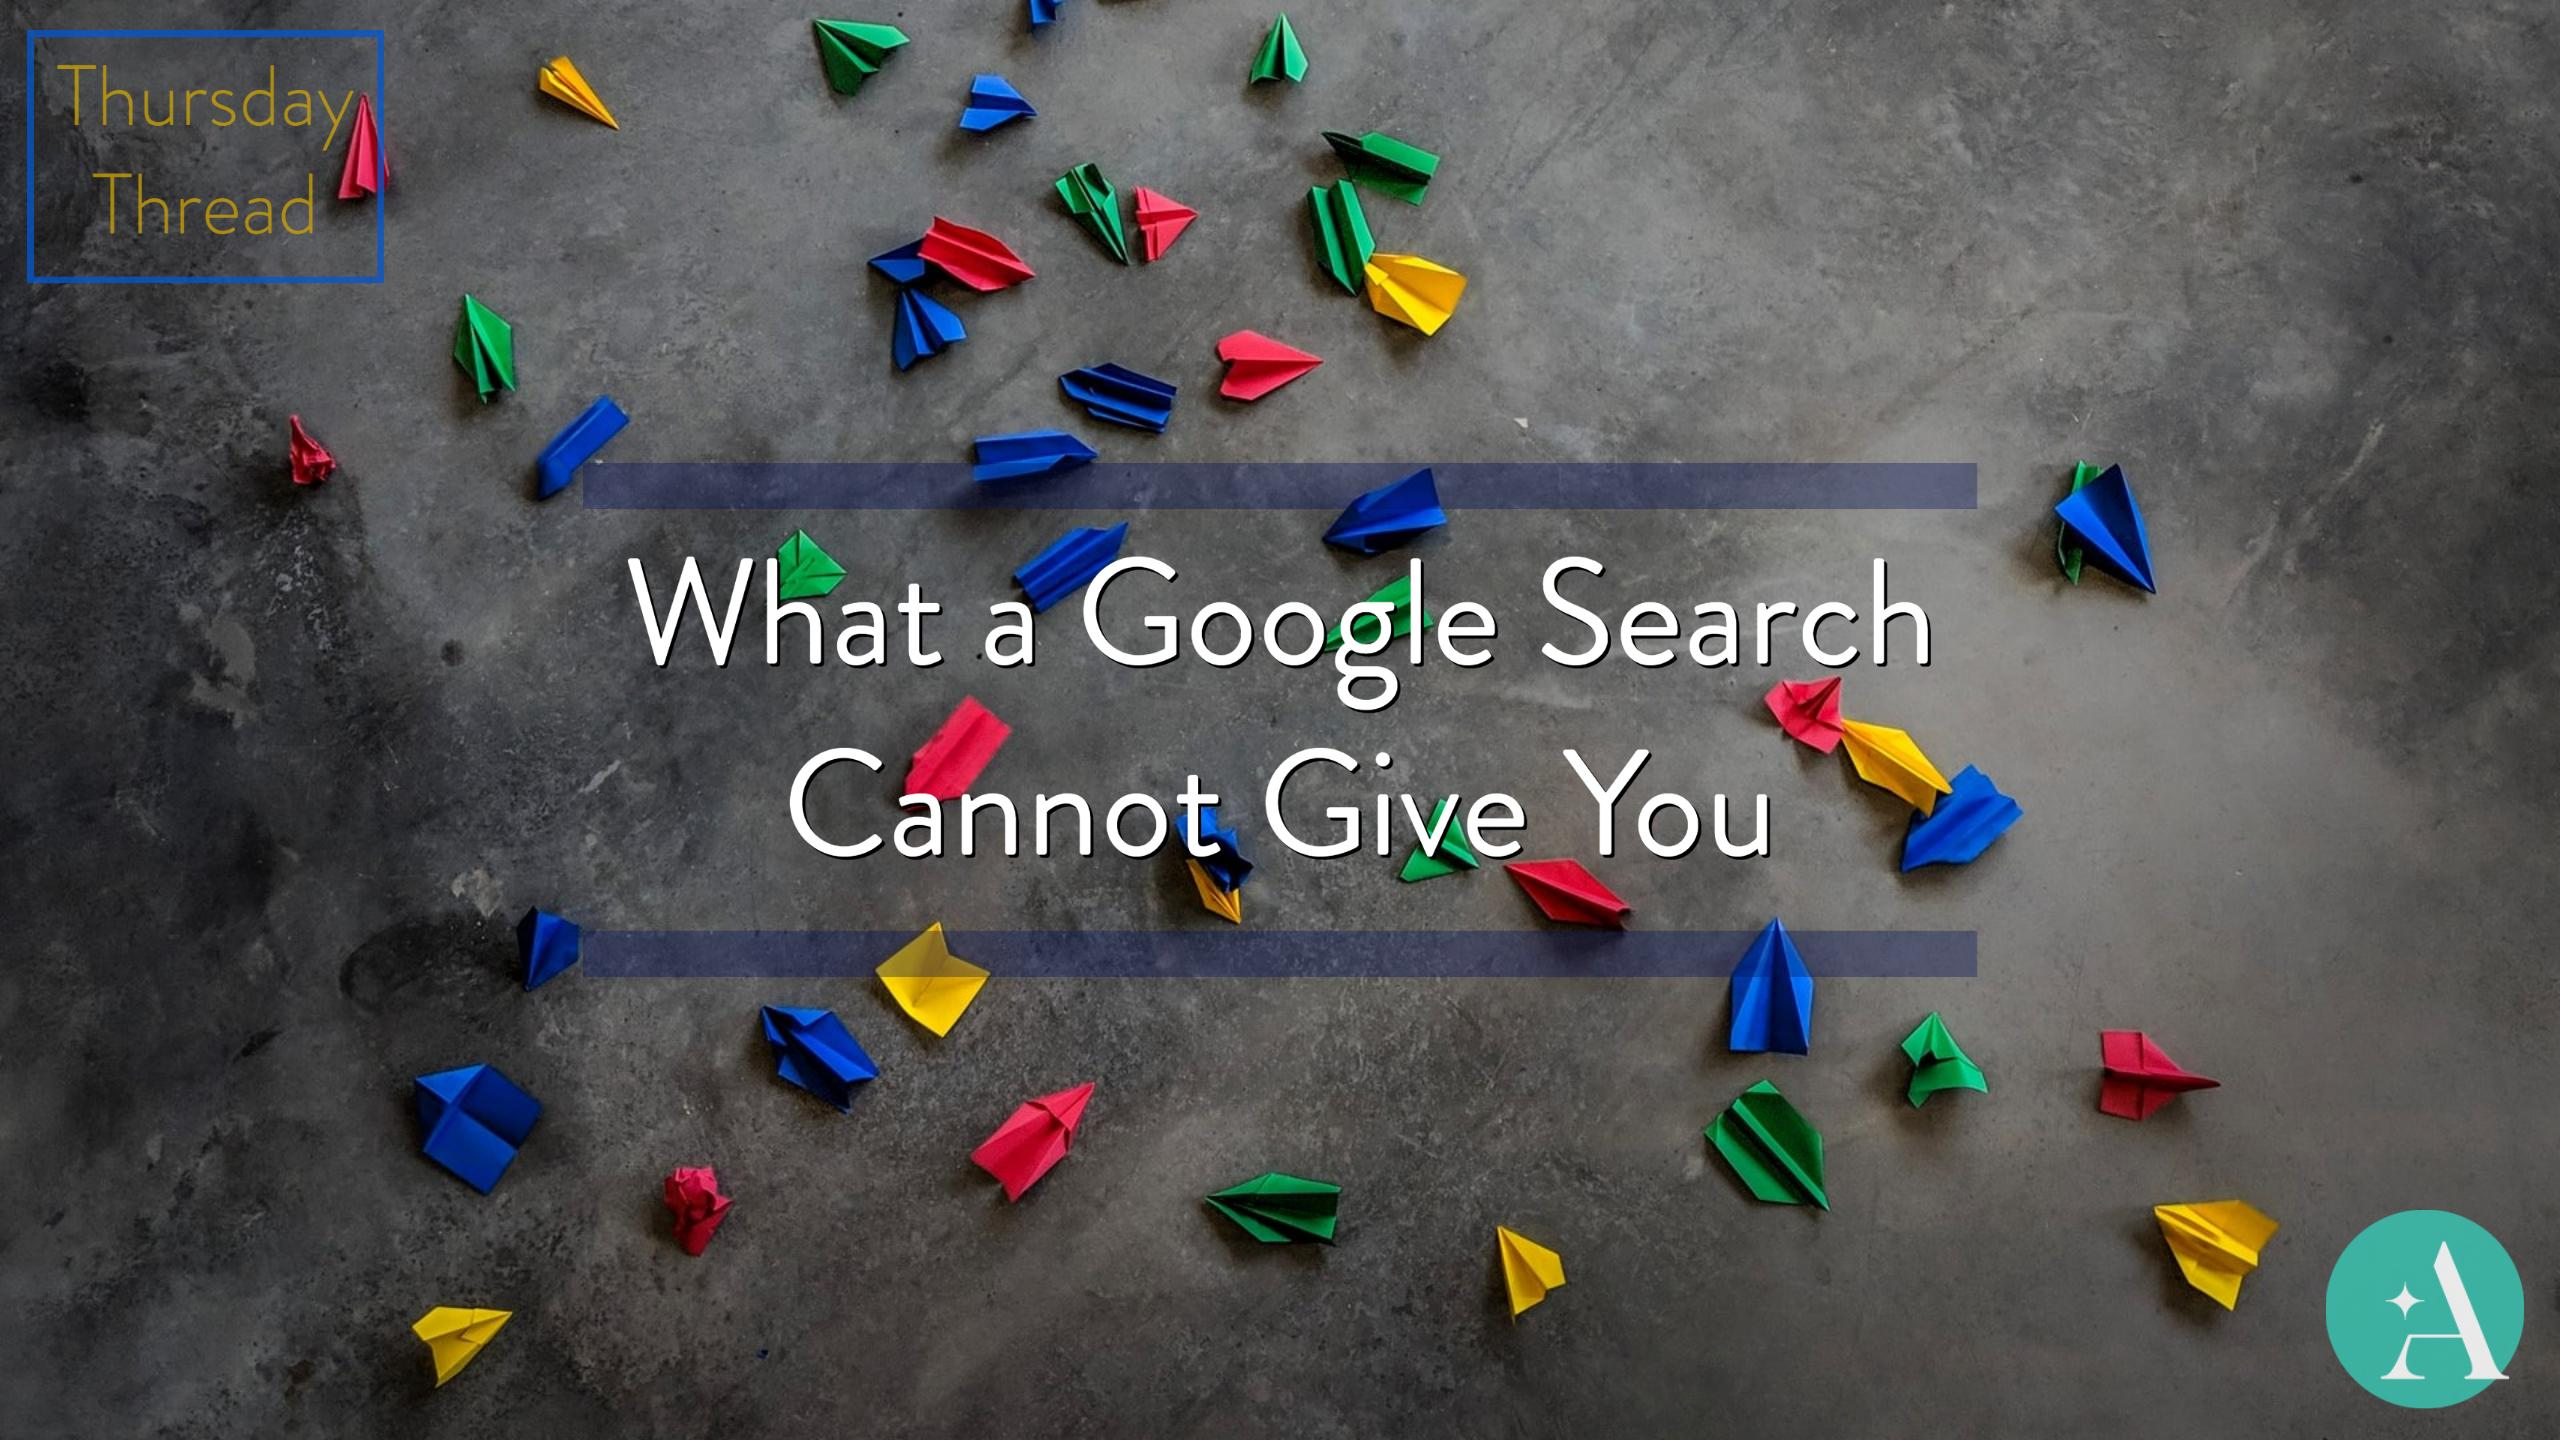 Thursday Thread: What a Google Search Cannot Give You Thumbnail